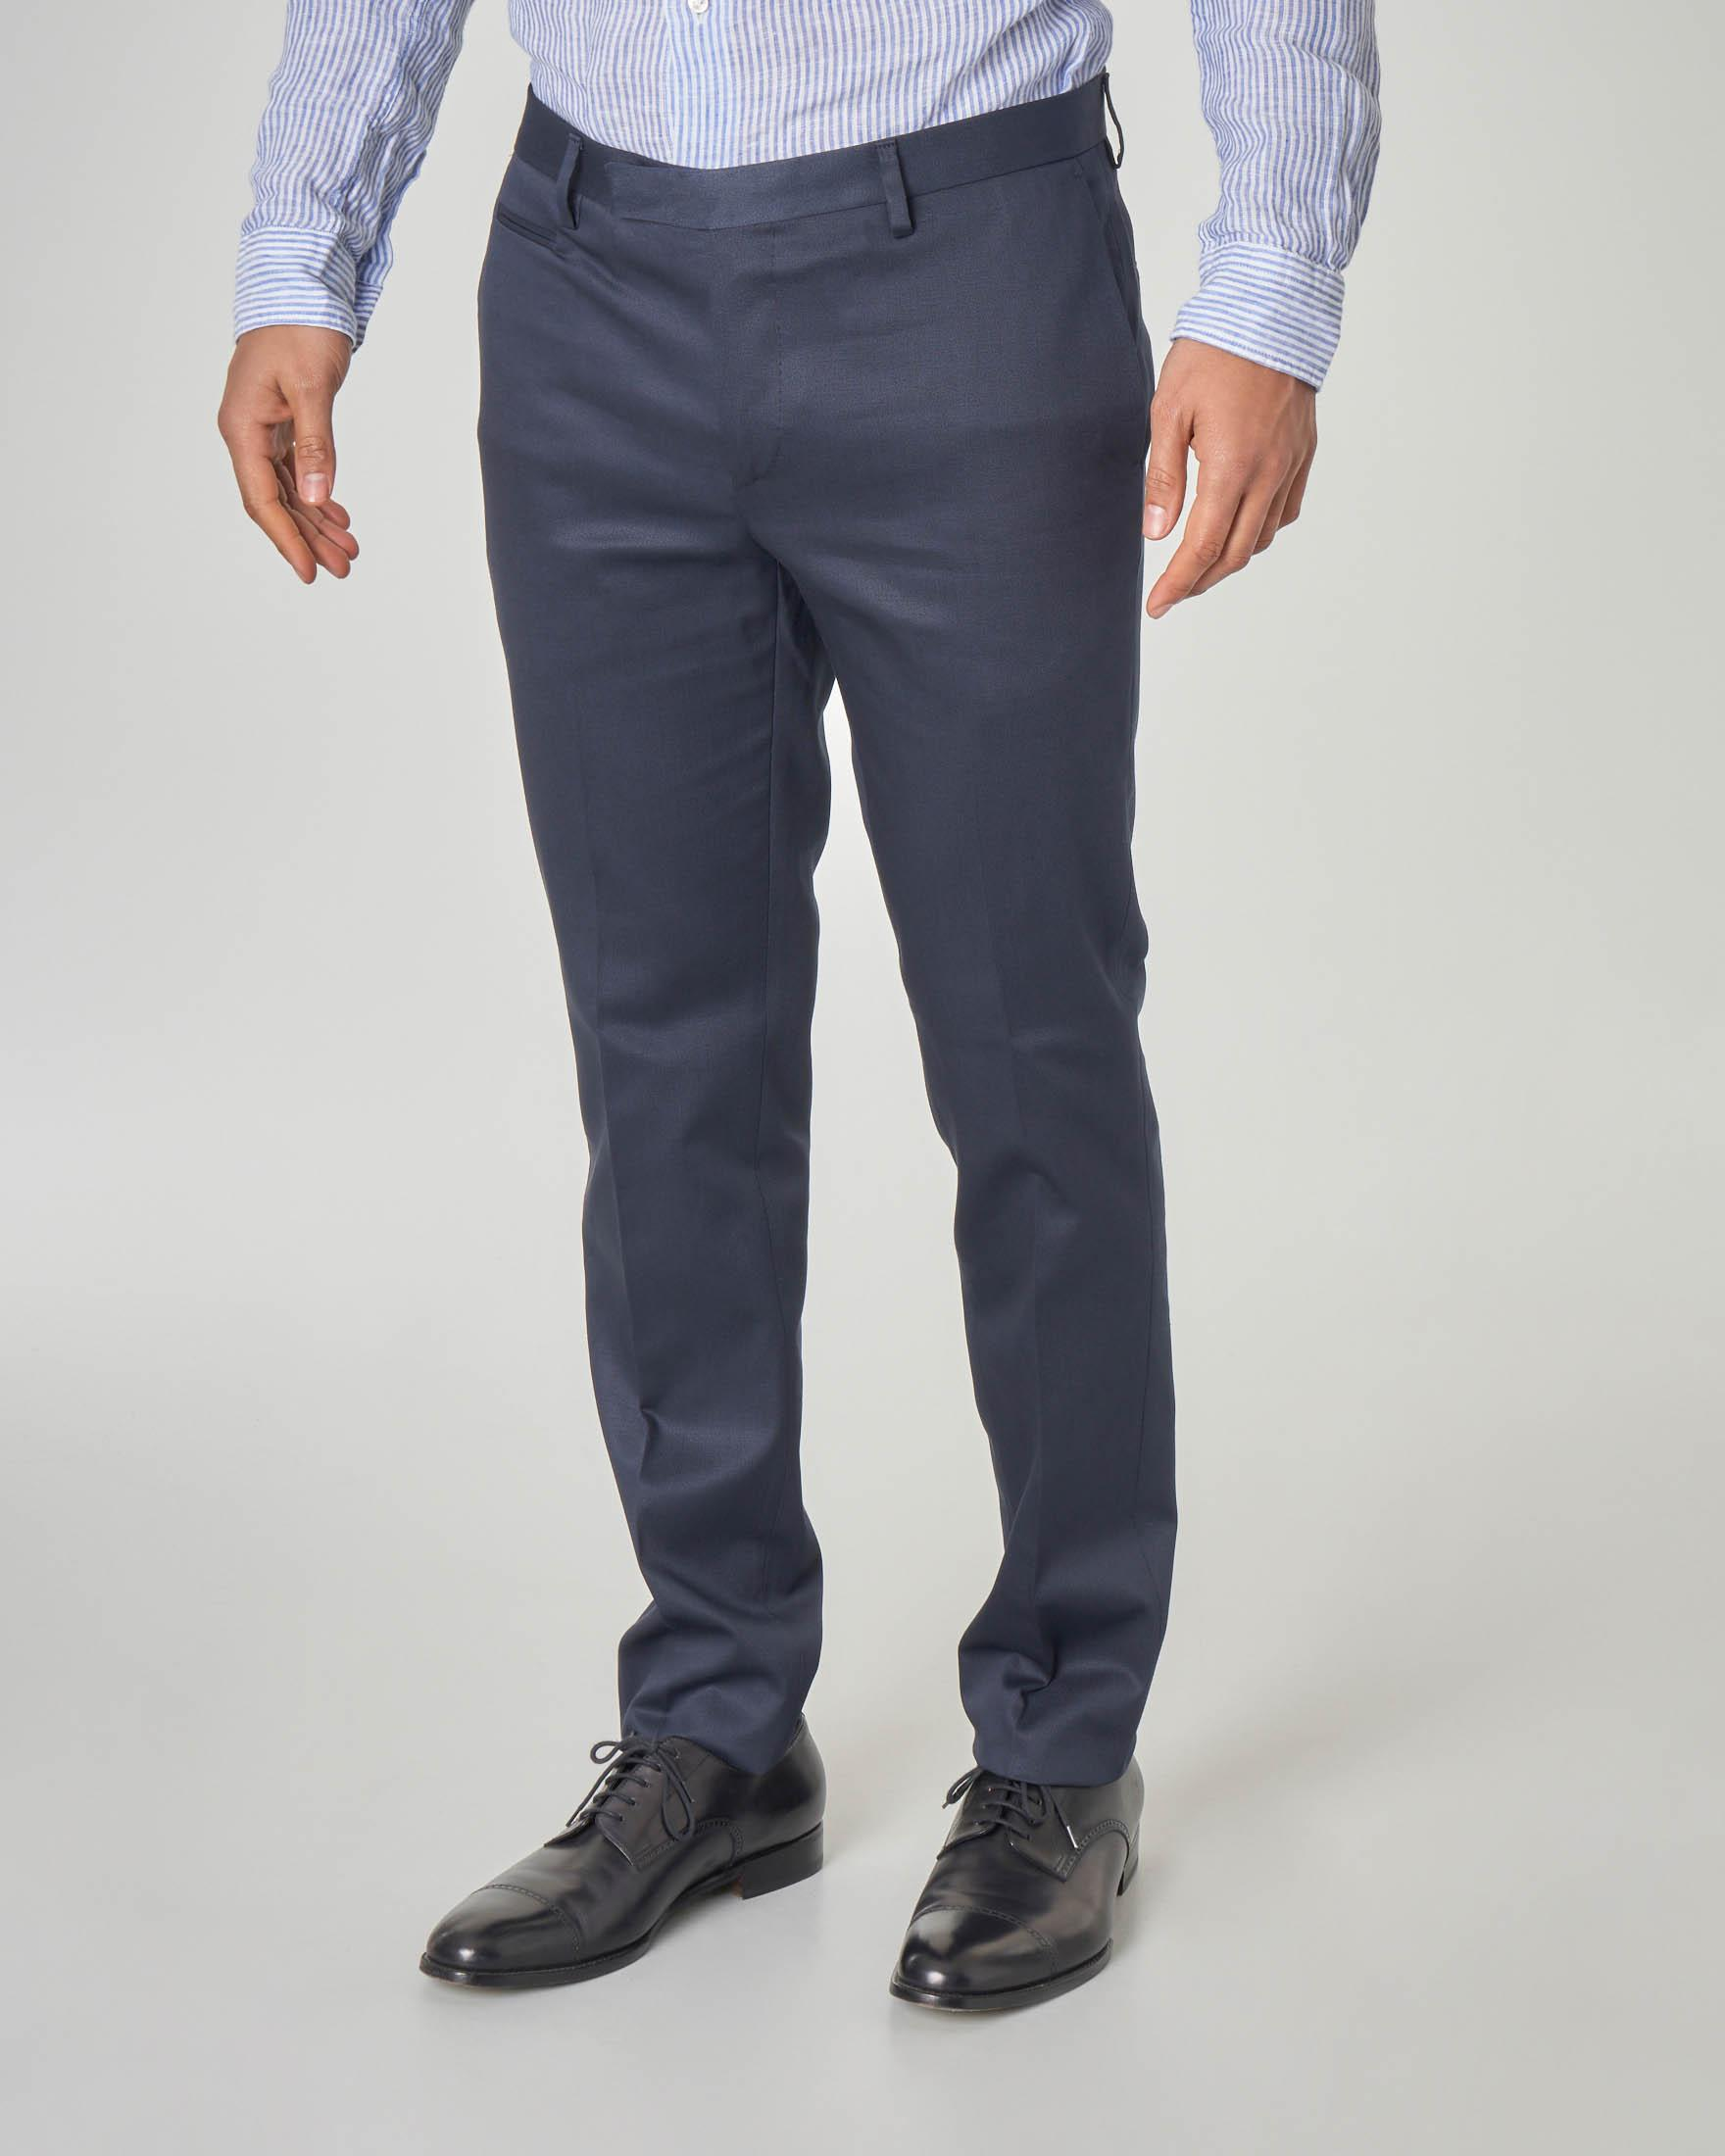 Pantalone blu in cotone stretch